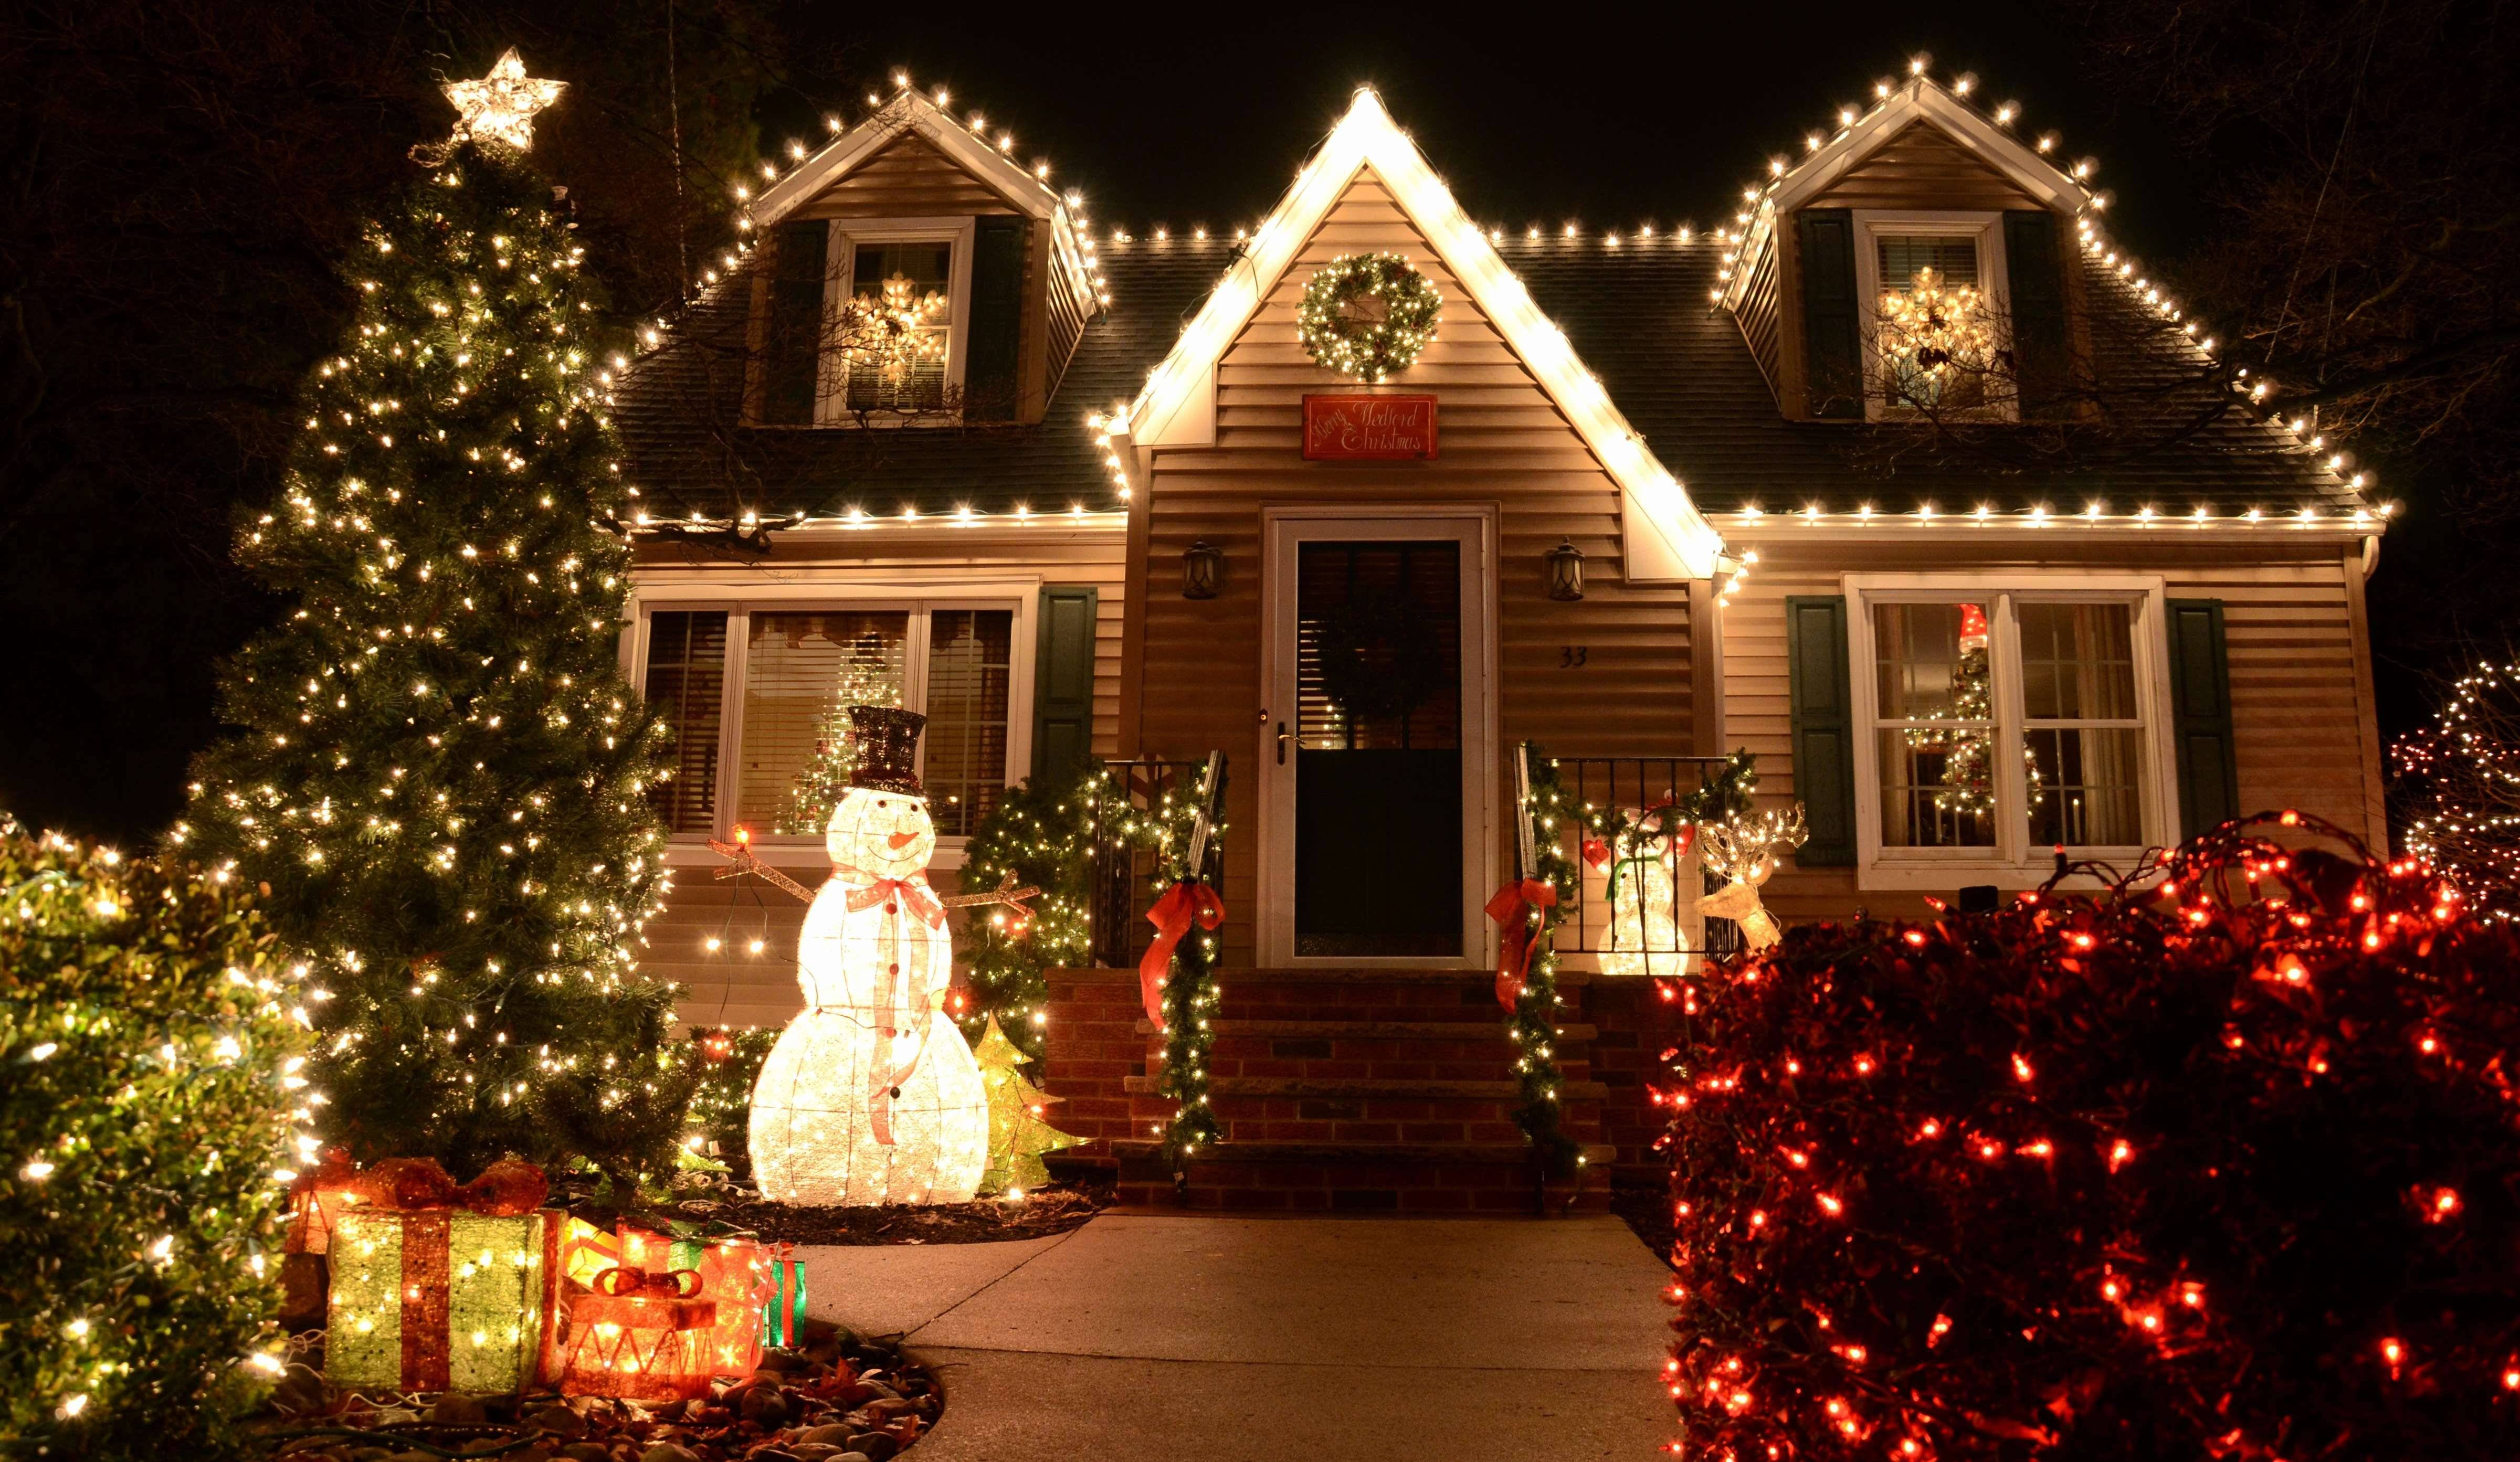 home decorating for christmas inspirational cheap outdoor christmas decoration ideas fresh decor home decor 2017 of home decorating for christmas